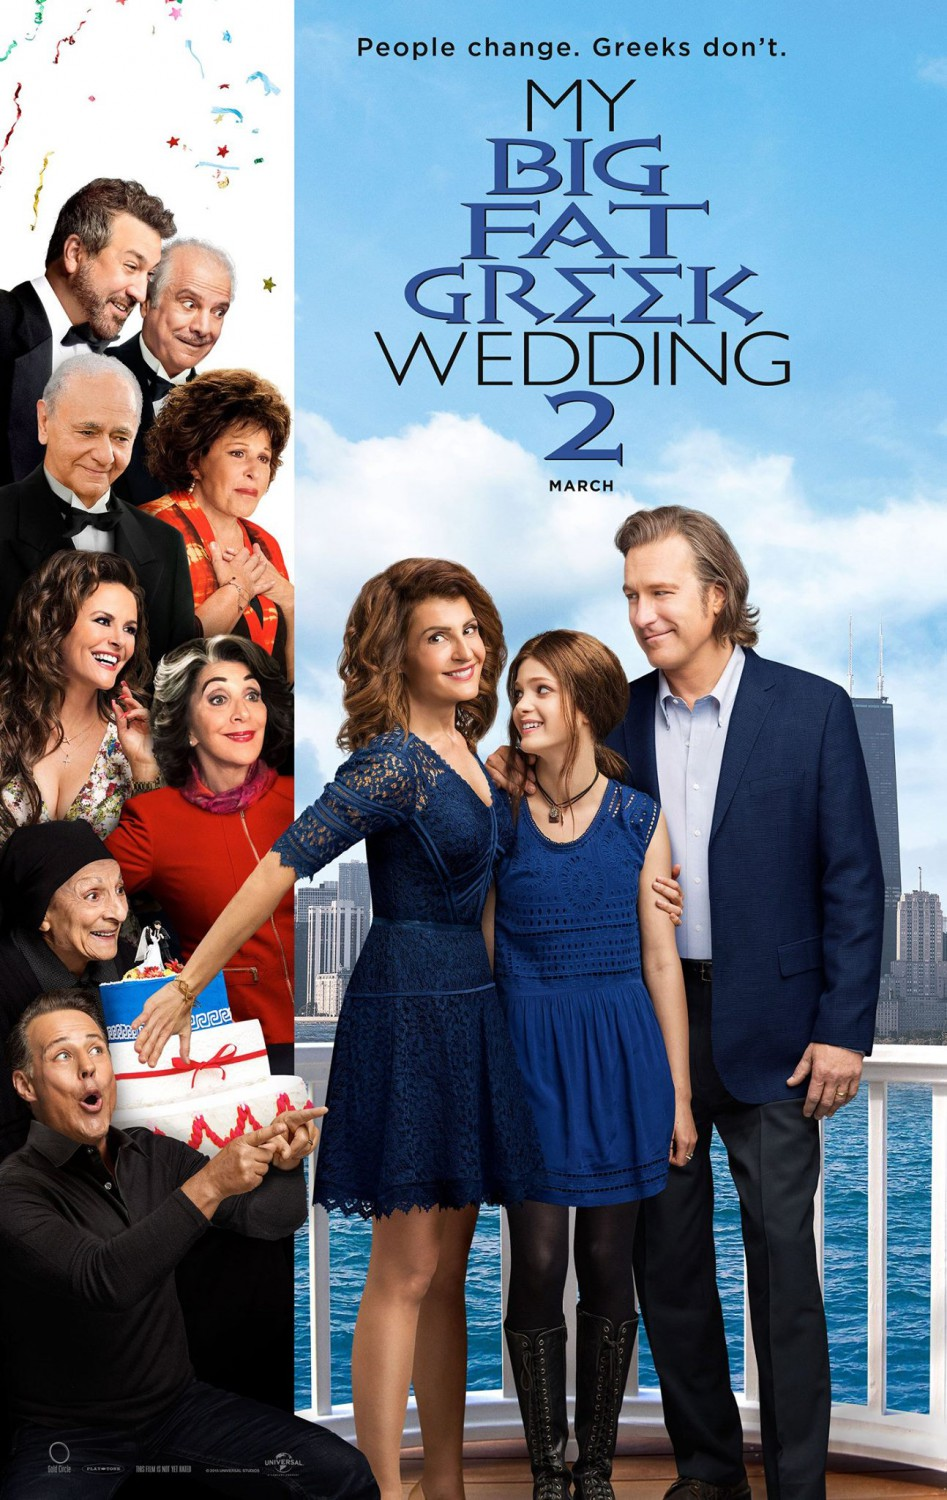 17 - My Big Fat Greek Wedding 2